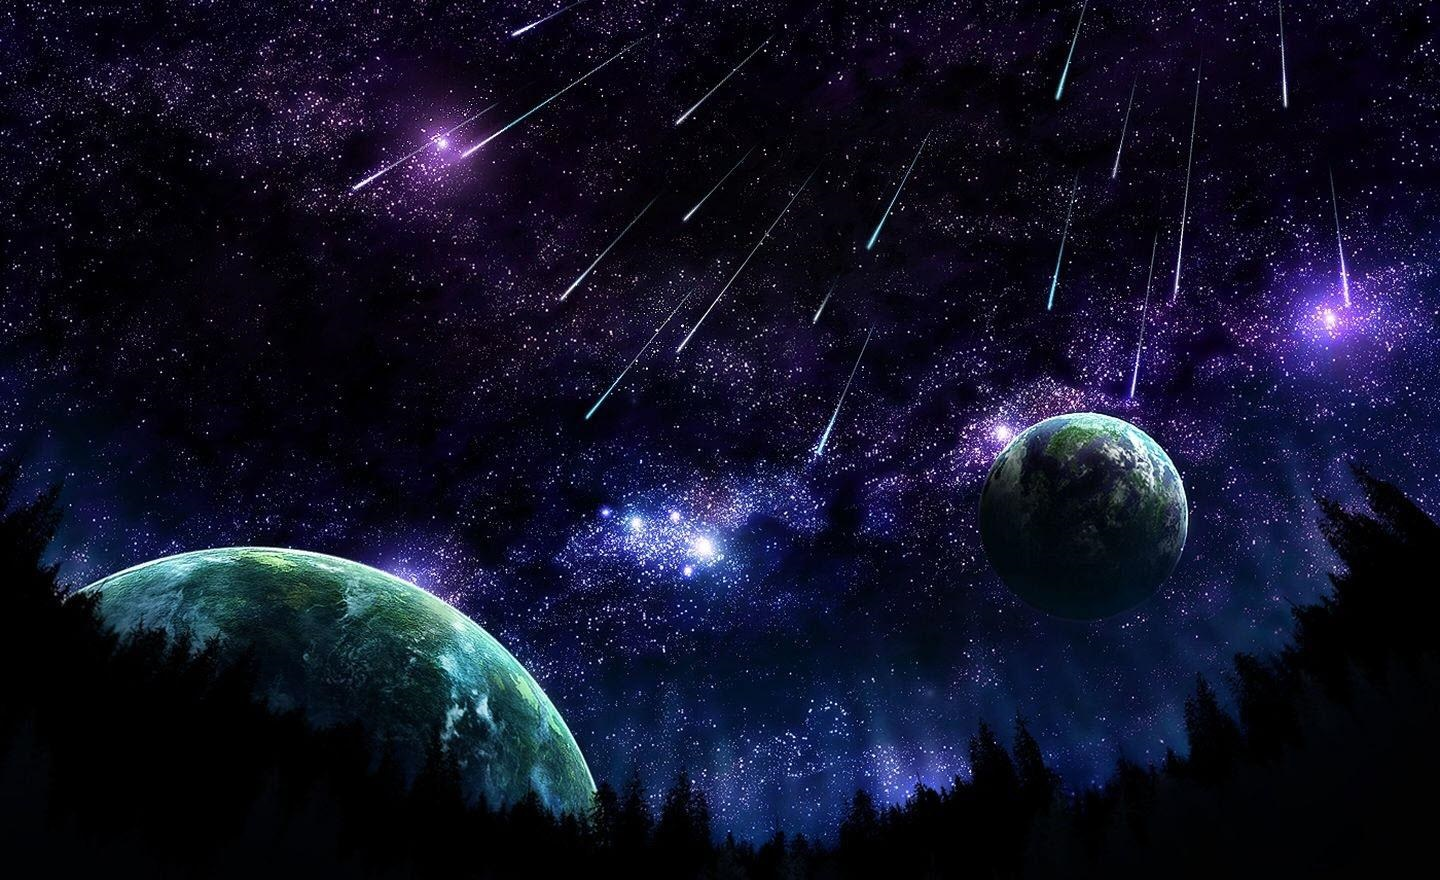 PHOTOGRAPHY PLUS 47 Galaxy HD wallpaper Space Universe Planets 1440x880